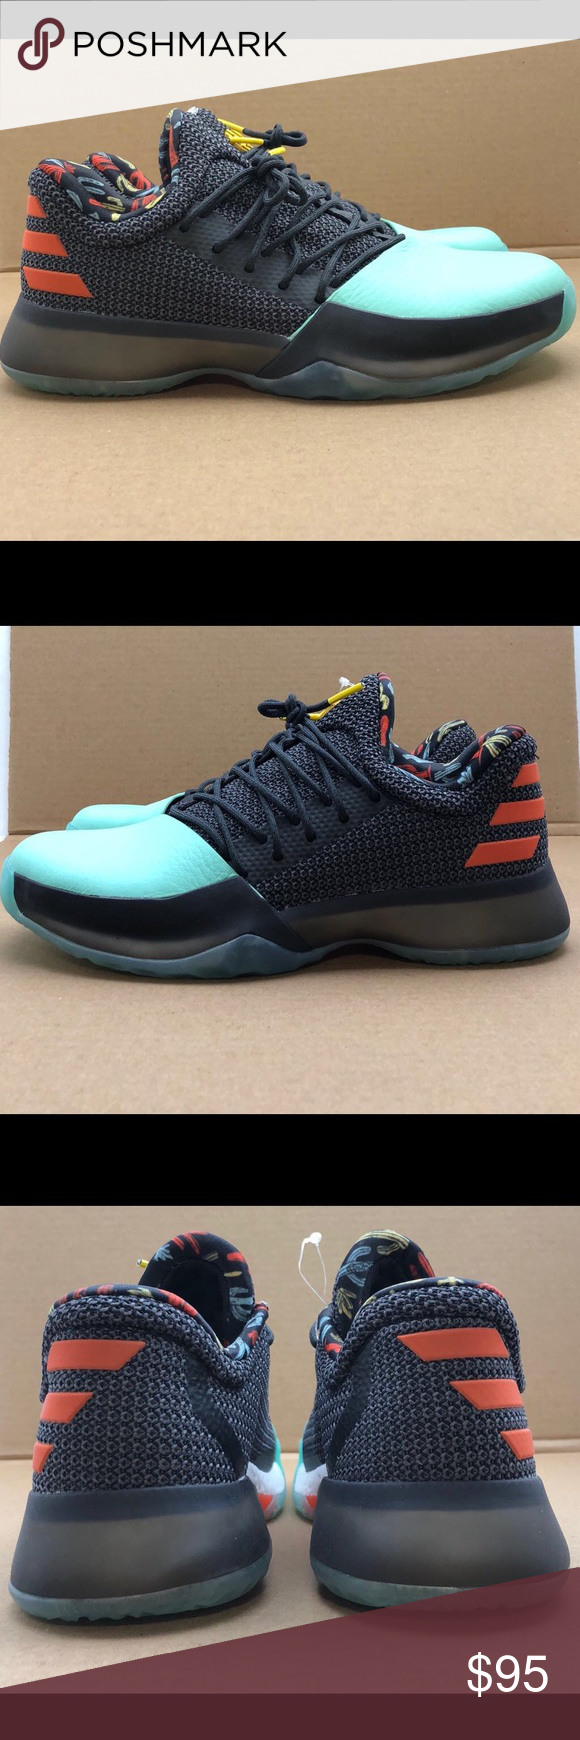 """New Adidas James Harden Vol 1 """"Cactus Kid"""" size 7Y New Adidas James Harden  Vol 1 """"Cactus Kid"""" size 7 youth NEW Without Box 7 youth size   8.5 women s  size ... 32e9e74f9"""